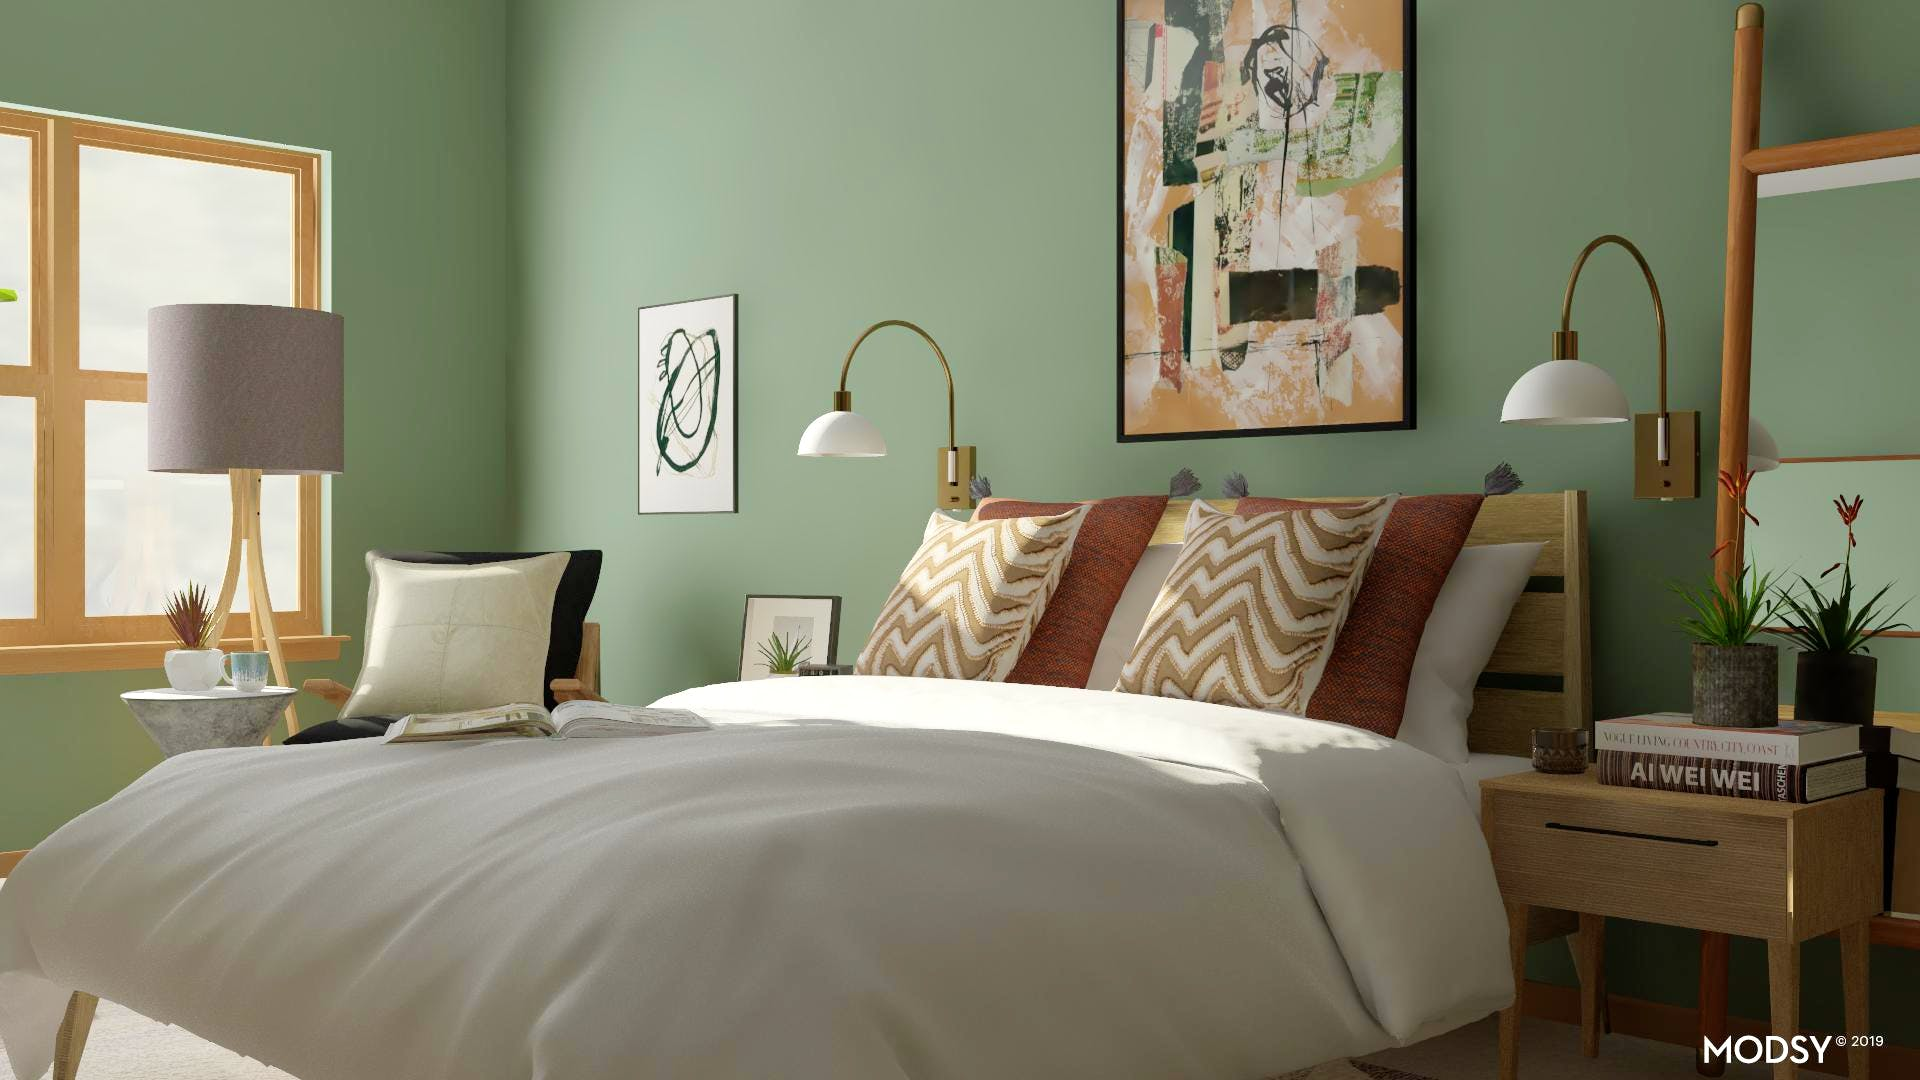 Down To Earth Tone Mid-Century Modern Bedroom